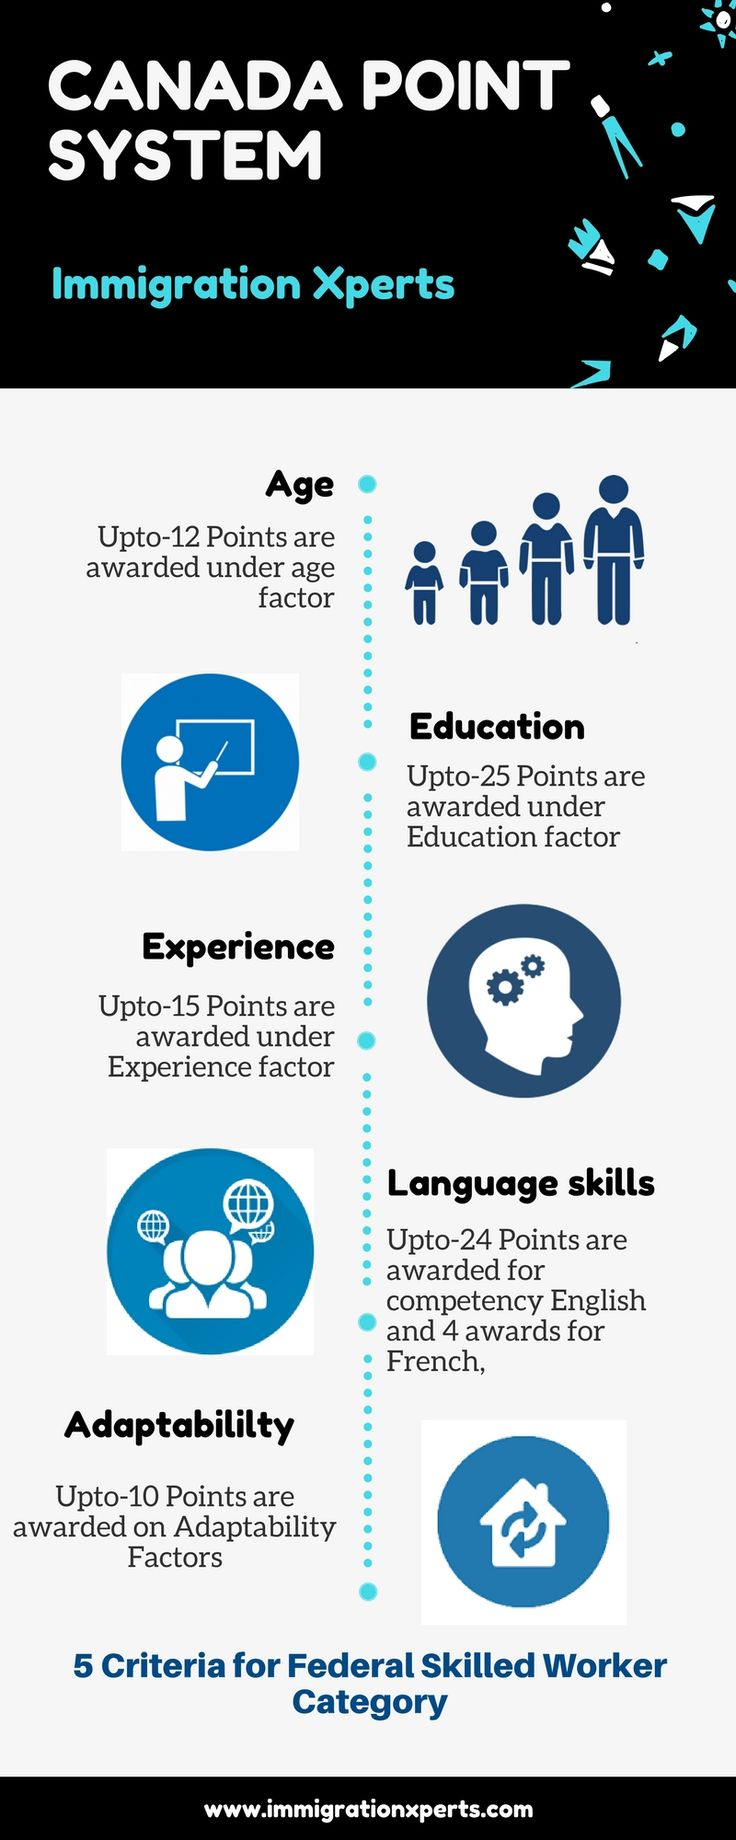 Canada point system canada point system is a selection factors of federal skilled workers for canada